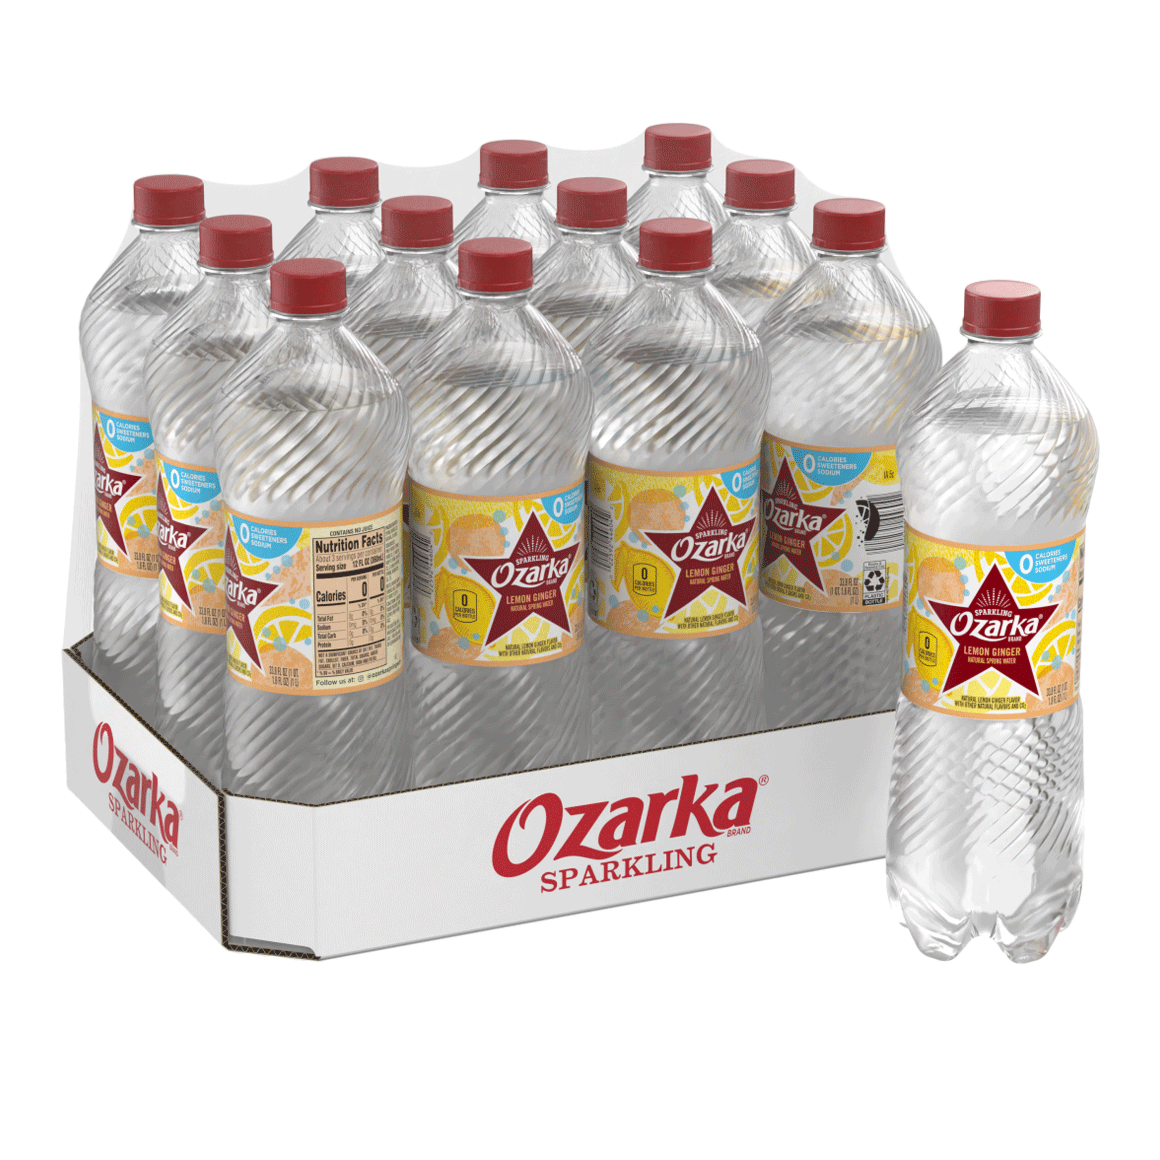 Ozarka® Brand Sparkling 100% Natural Spring Water - Lemon Ginger